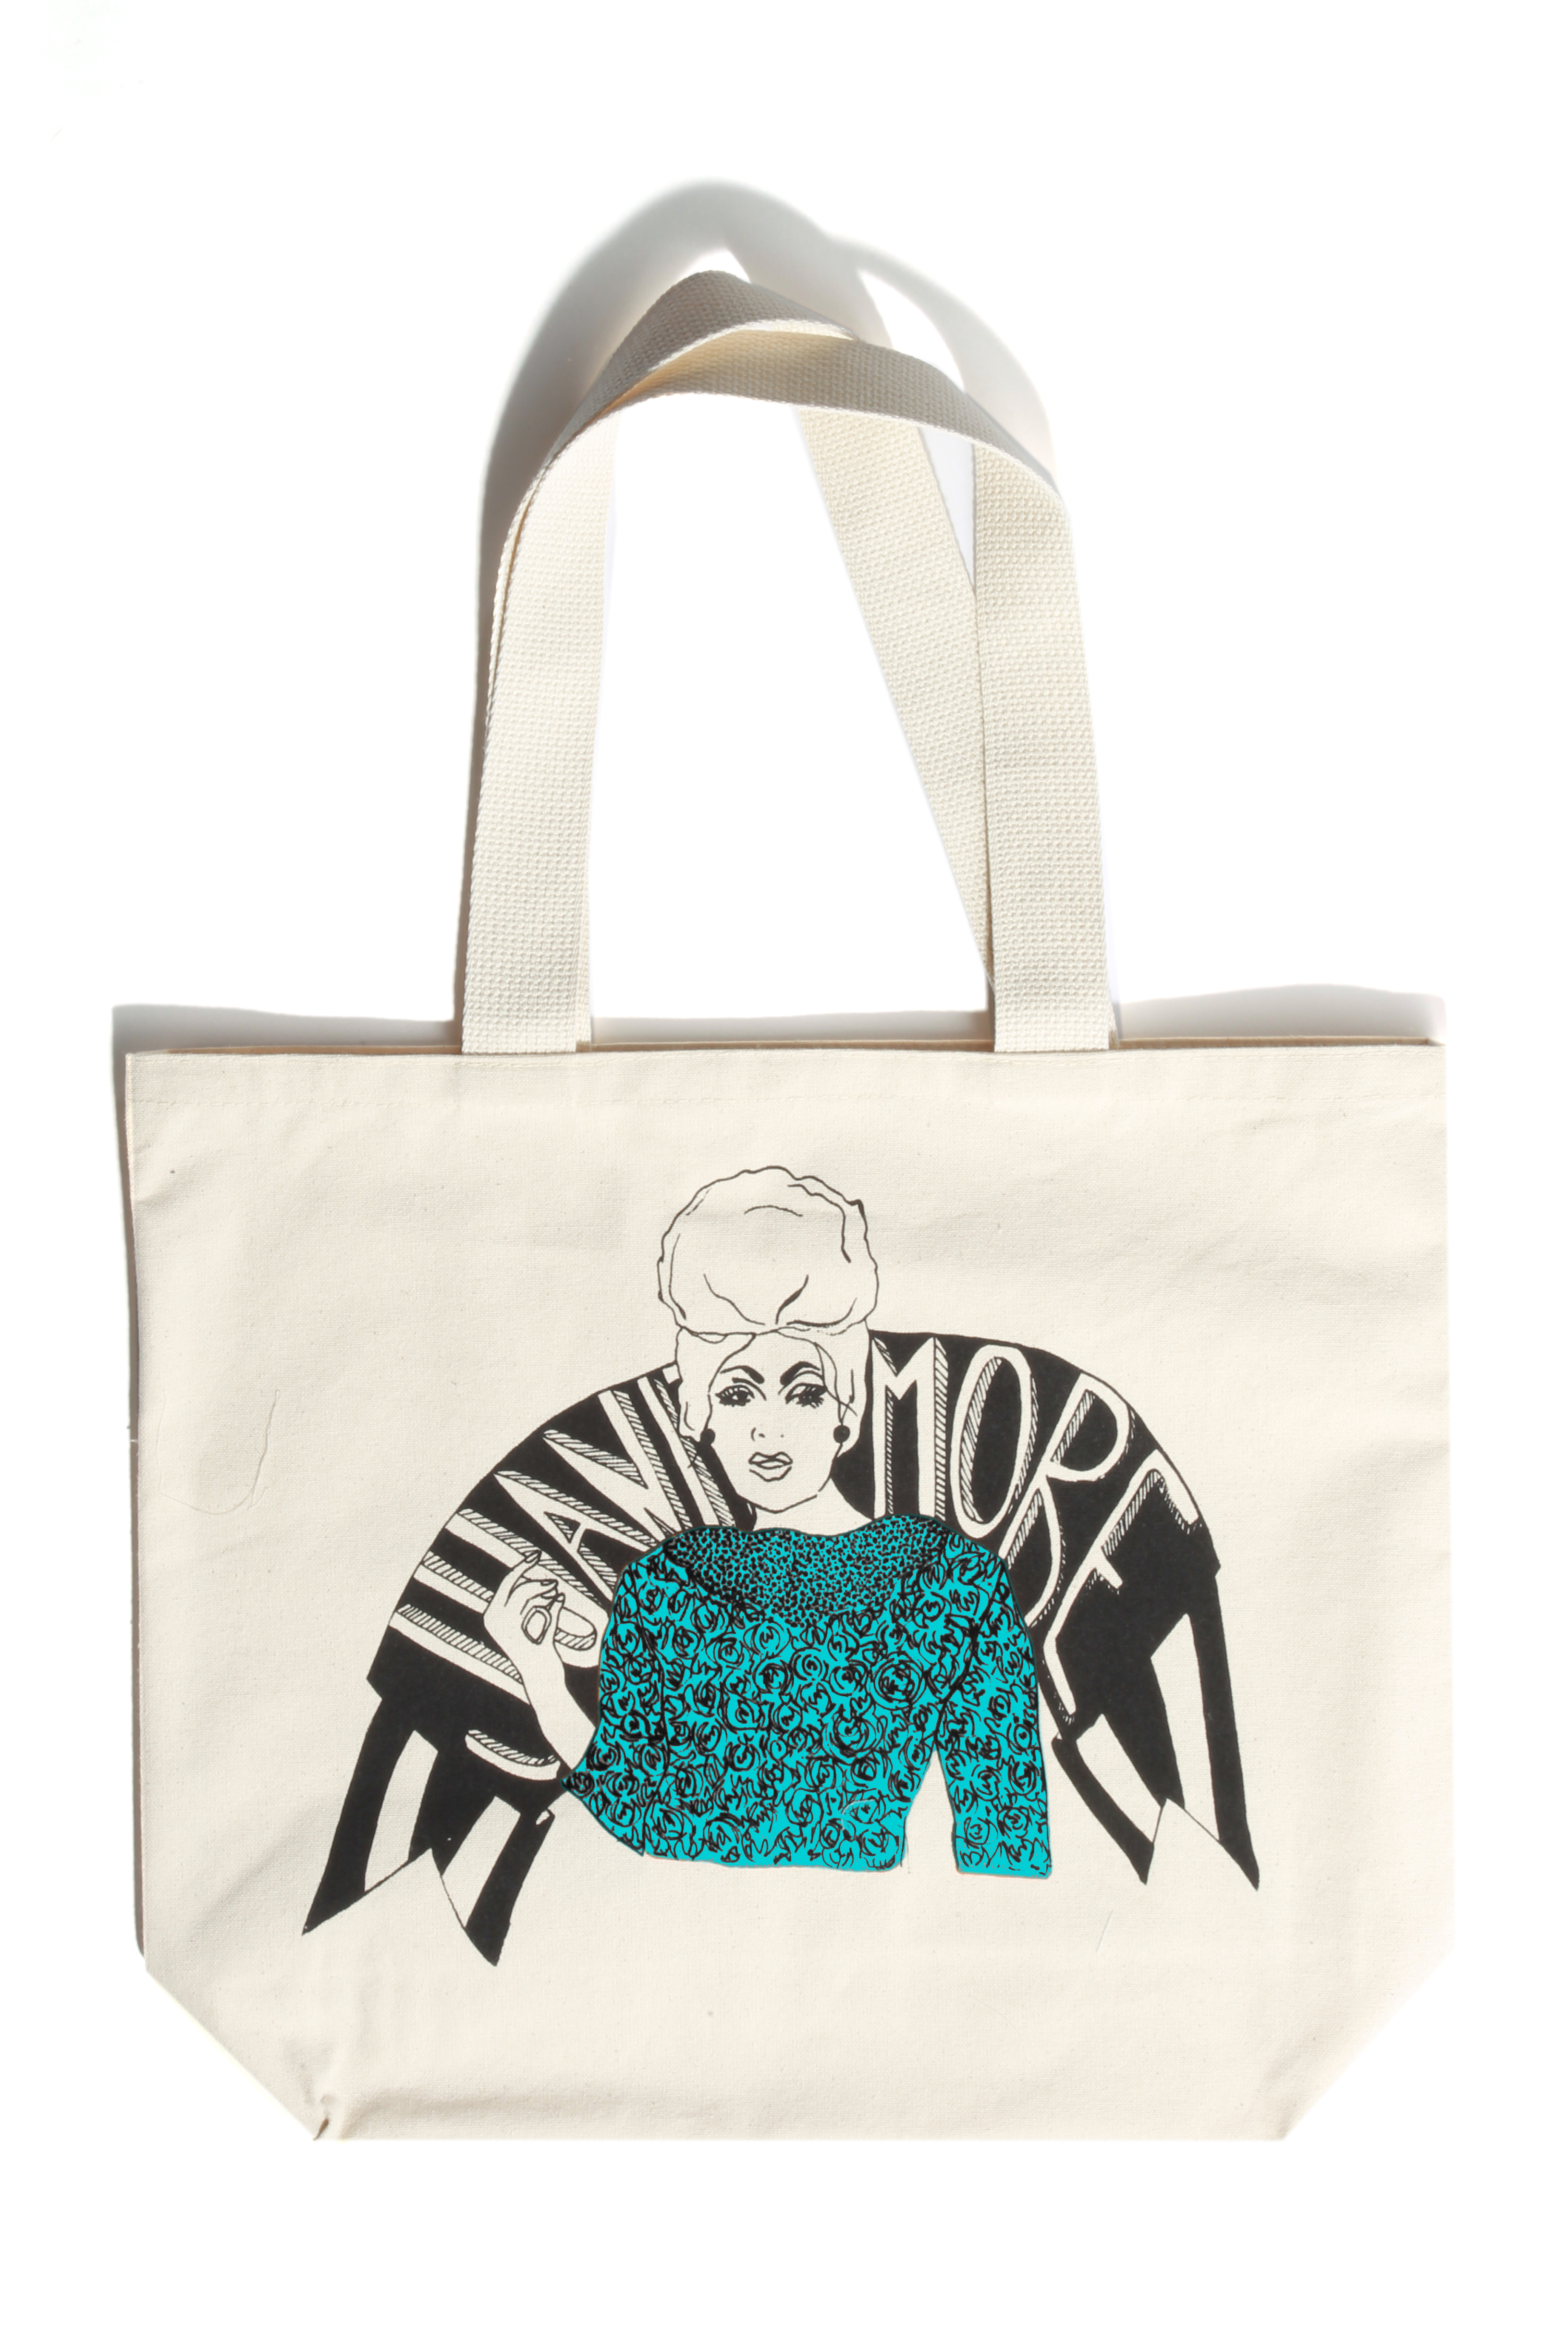 A tote designed by Jenny Johansson.